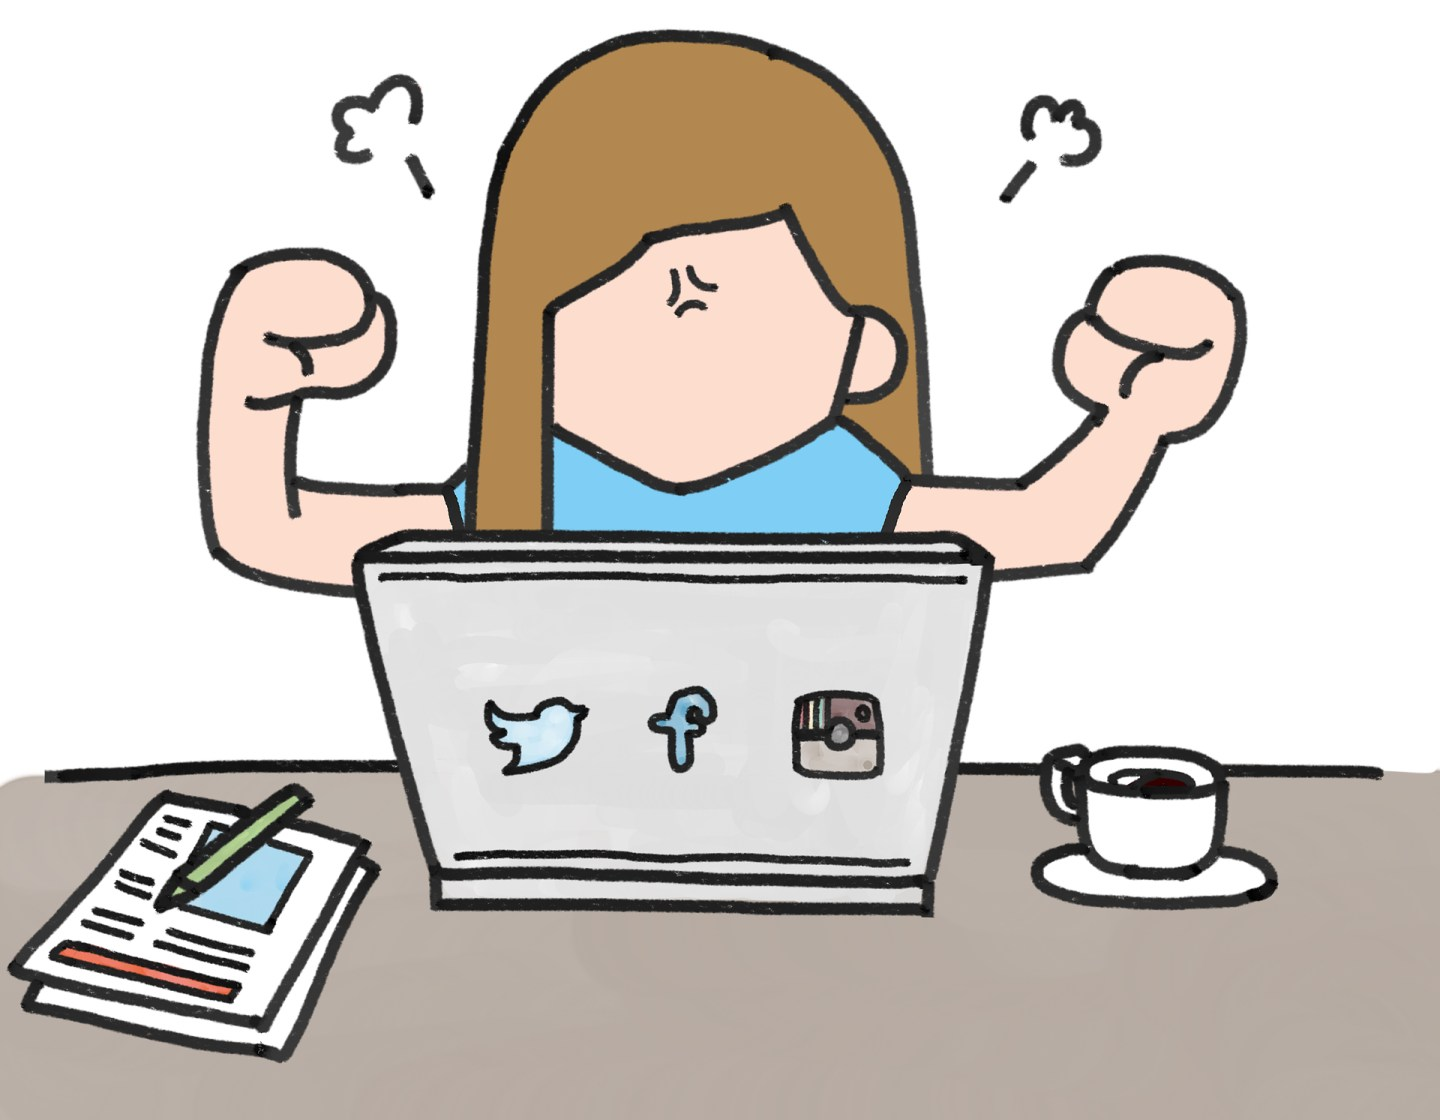 A cartoon of a person by a laptop looking angry, with a cup of tea and some notes by the side.